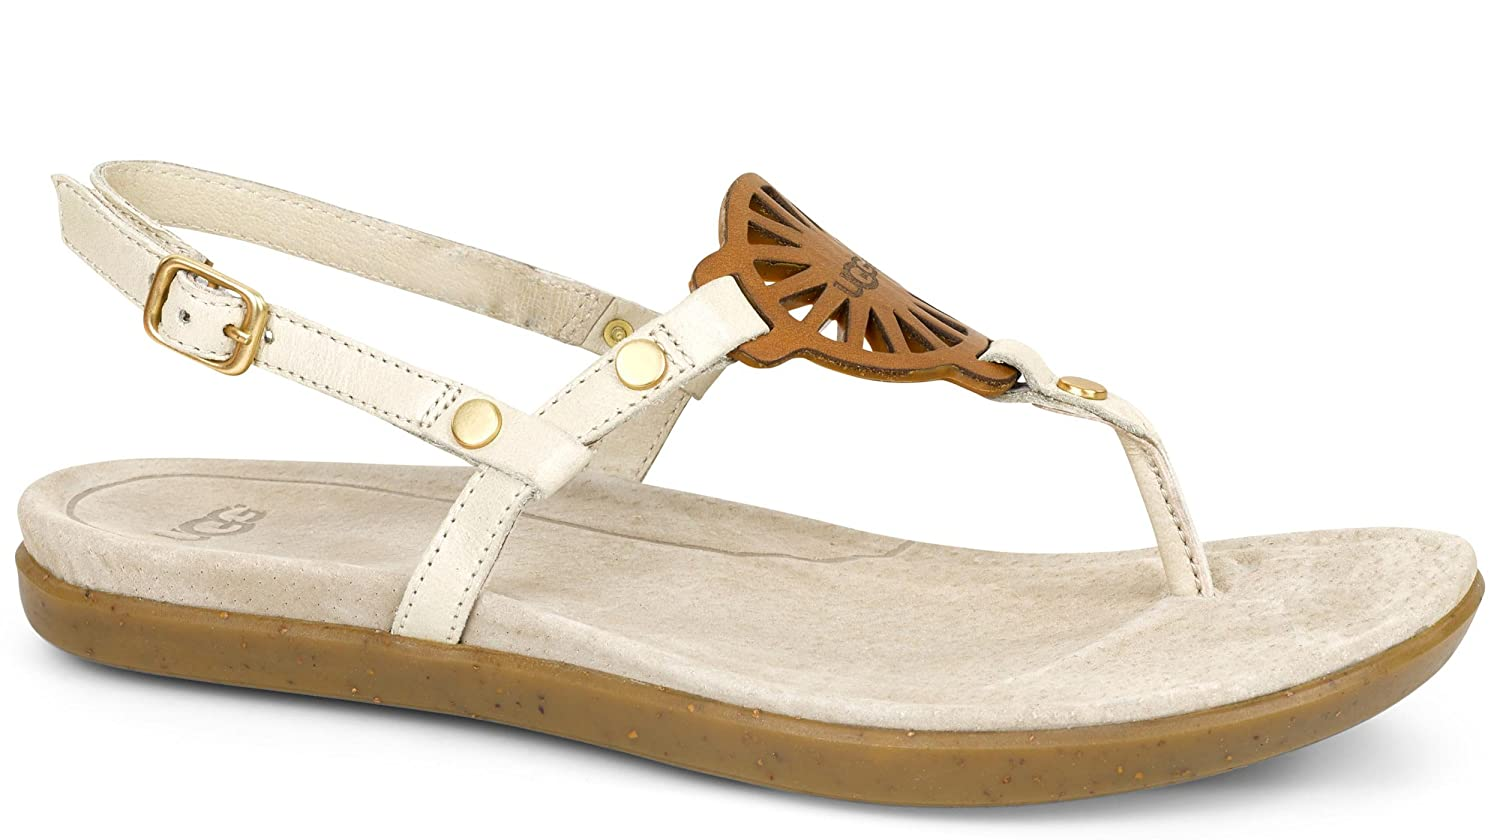 5179be76d2e UGG Women's Ayden Seagull Leather Sandal 7 B (M): Amazon.com.au: Fashion